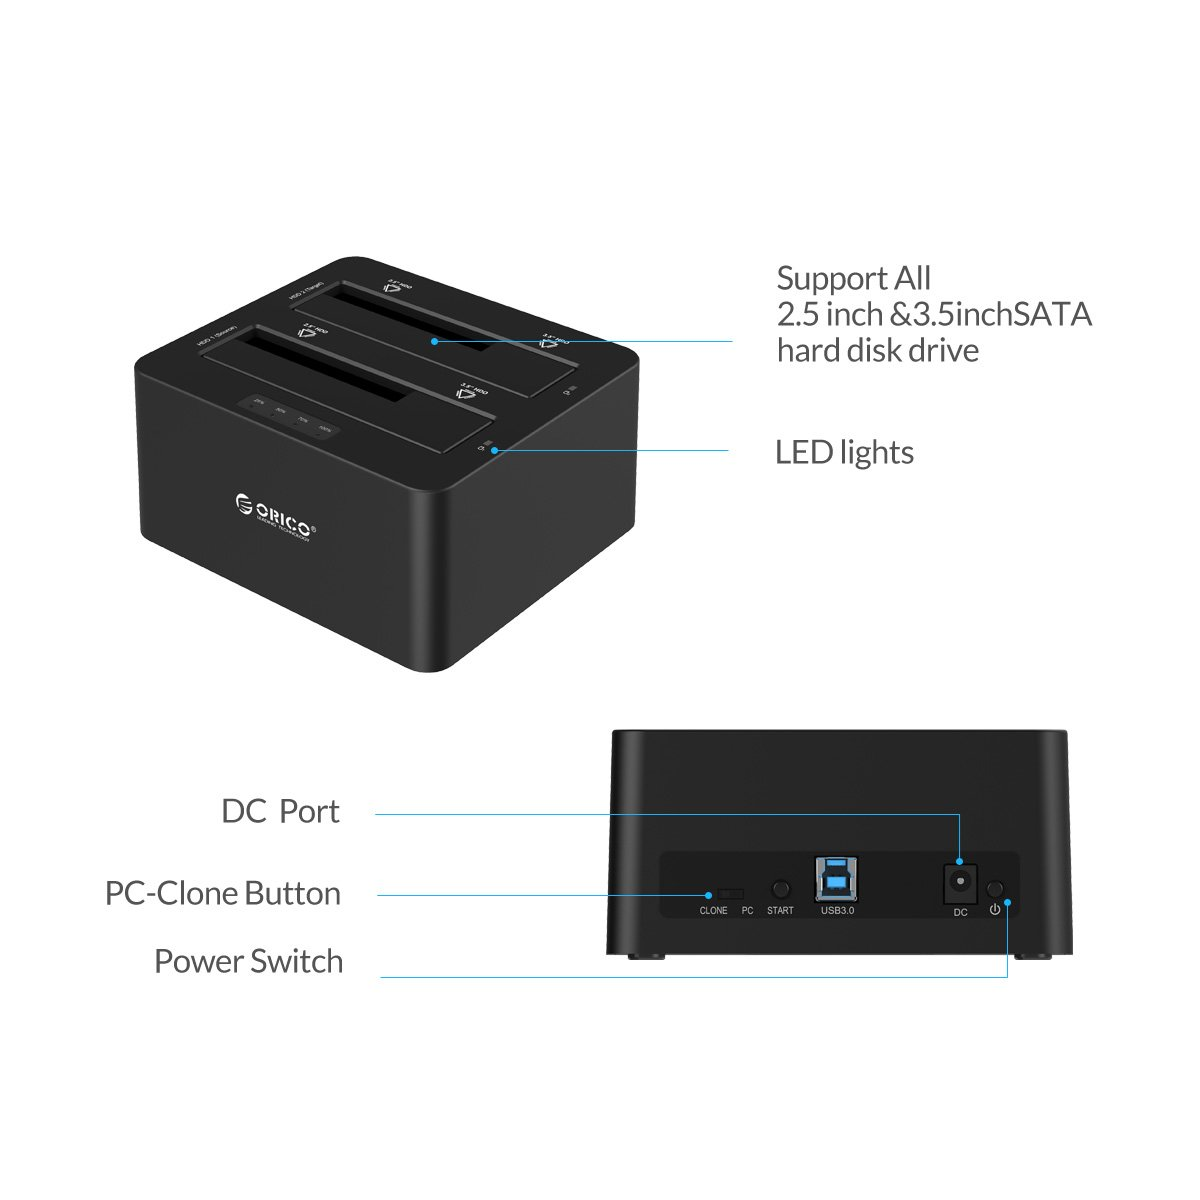 ORICO Dual-Bay 2.5'' 3.5'' USB 3.0 to SATA Hard Drive Docking Station with Offline Duplicator and Clone Function [UASP Protocol and 2 x 8TB Supported]- Black by ORICO (Image #4)